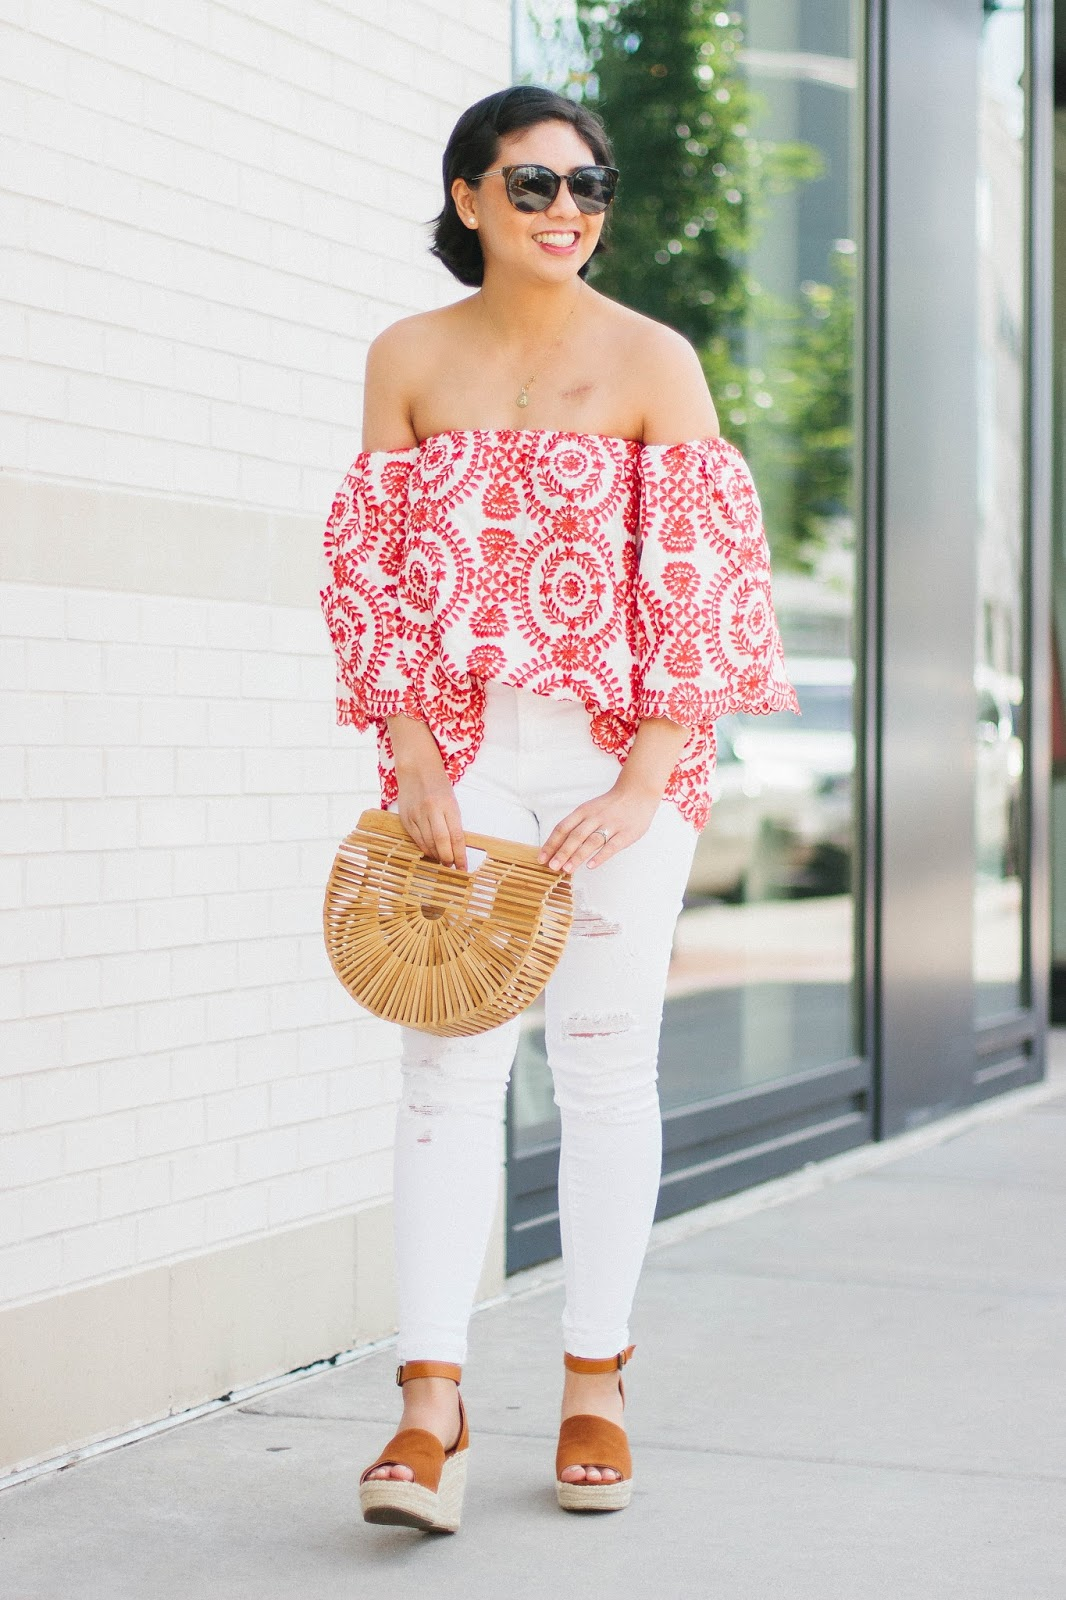 The most unique and beautiful off the shoulder top for the summer.